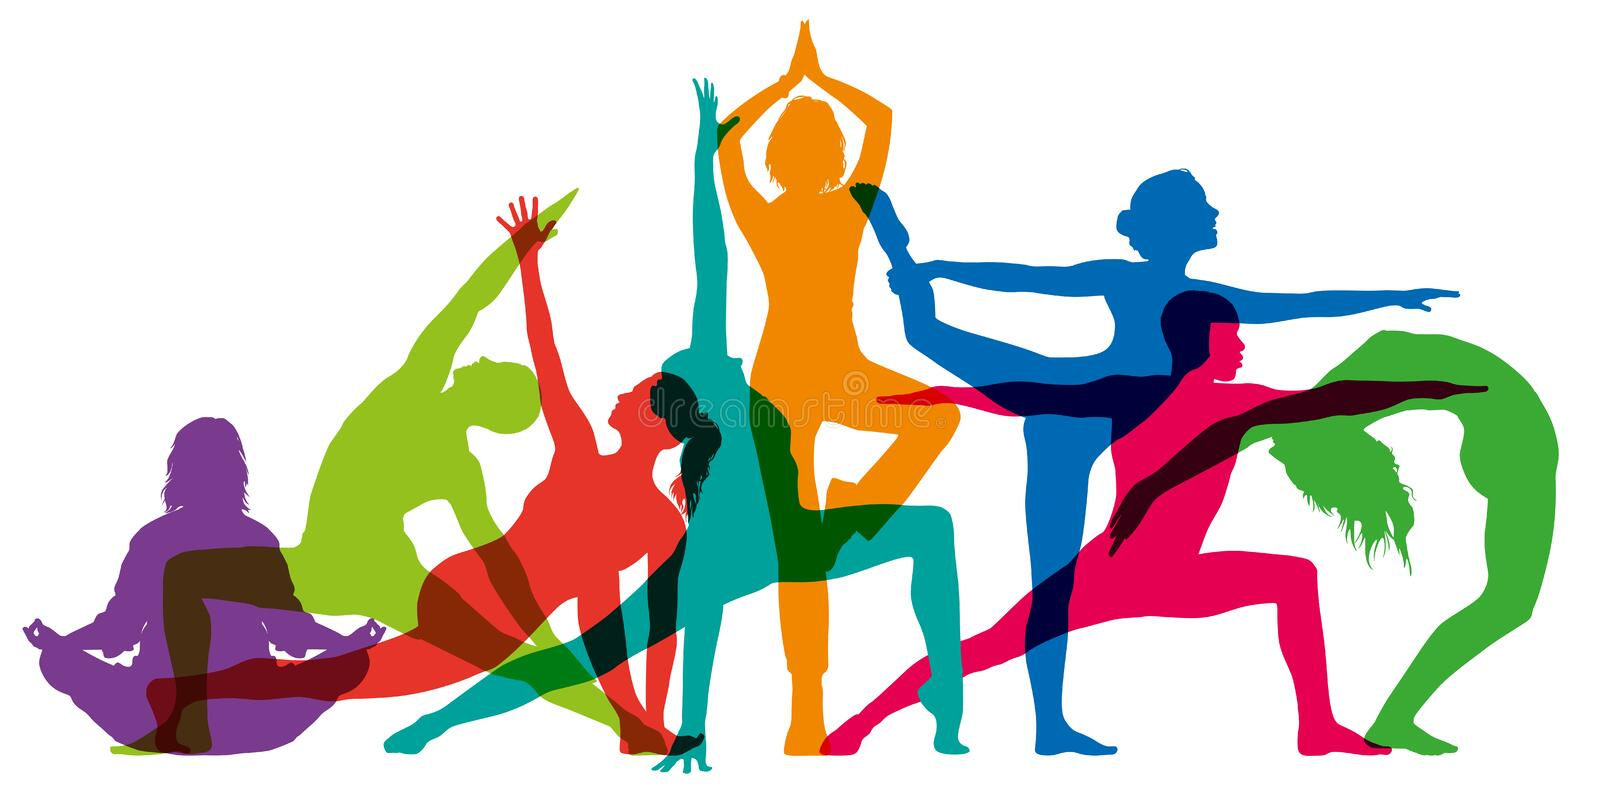 Set of colorful female silhouettes illustrating yoga positions stock illustration